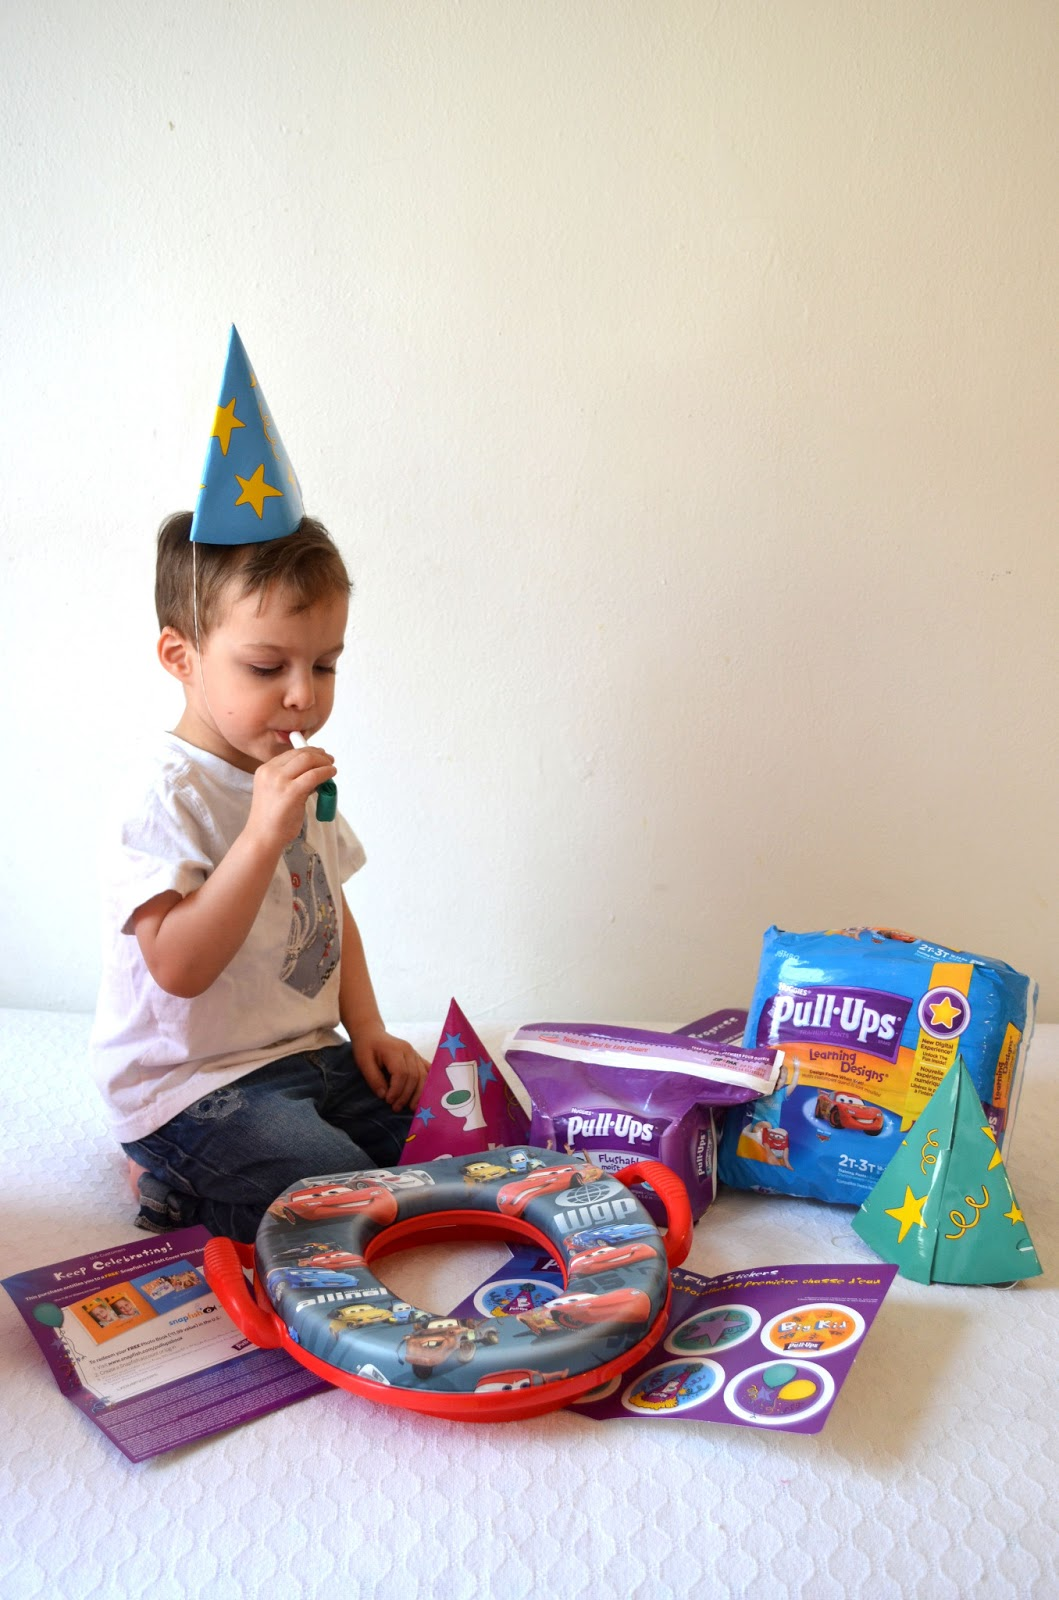 Potty Training Amp Pull Ups Prize Pack Giveaway Sponsored